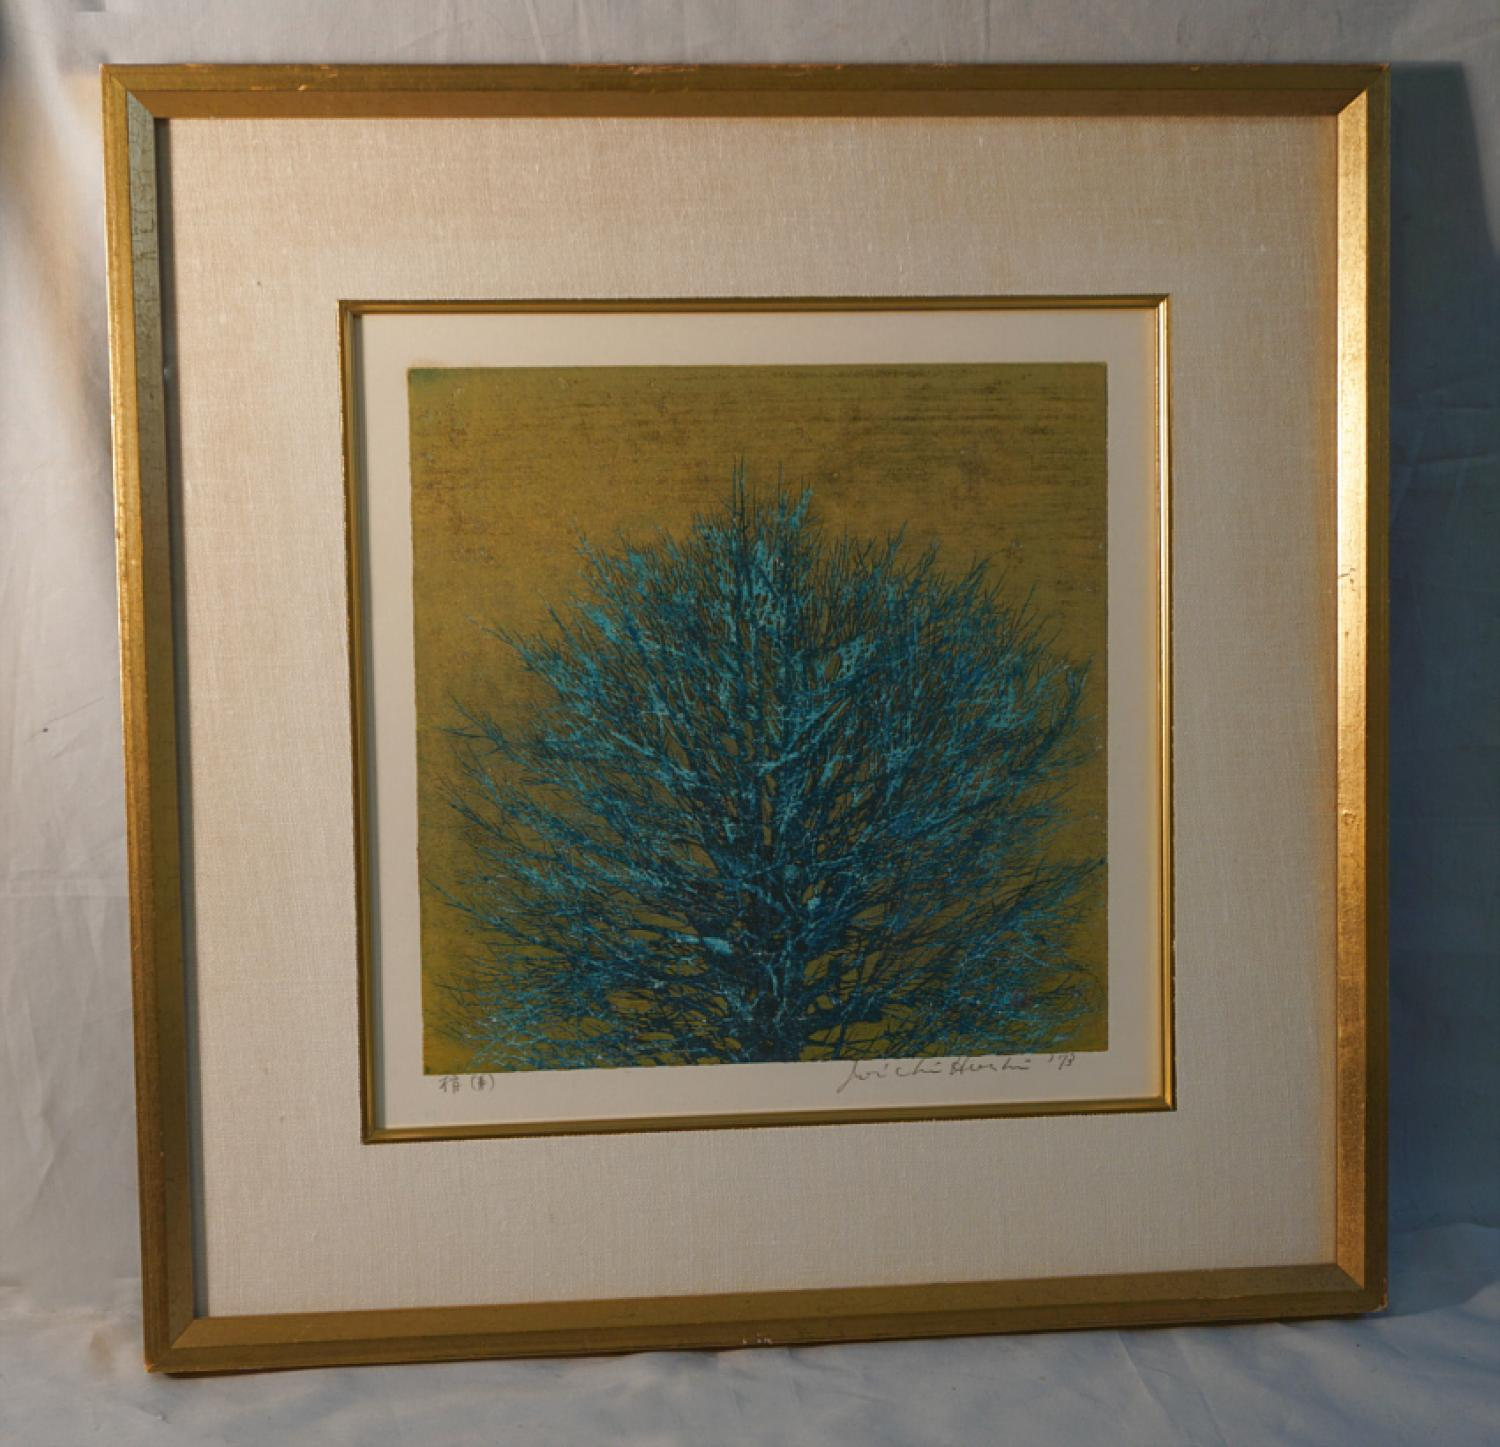 Joichi Hoshi wood cut print of tree dated 1973